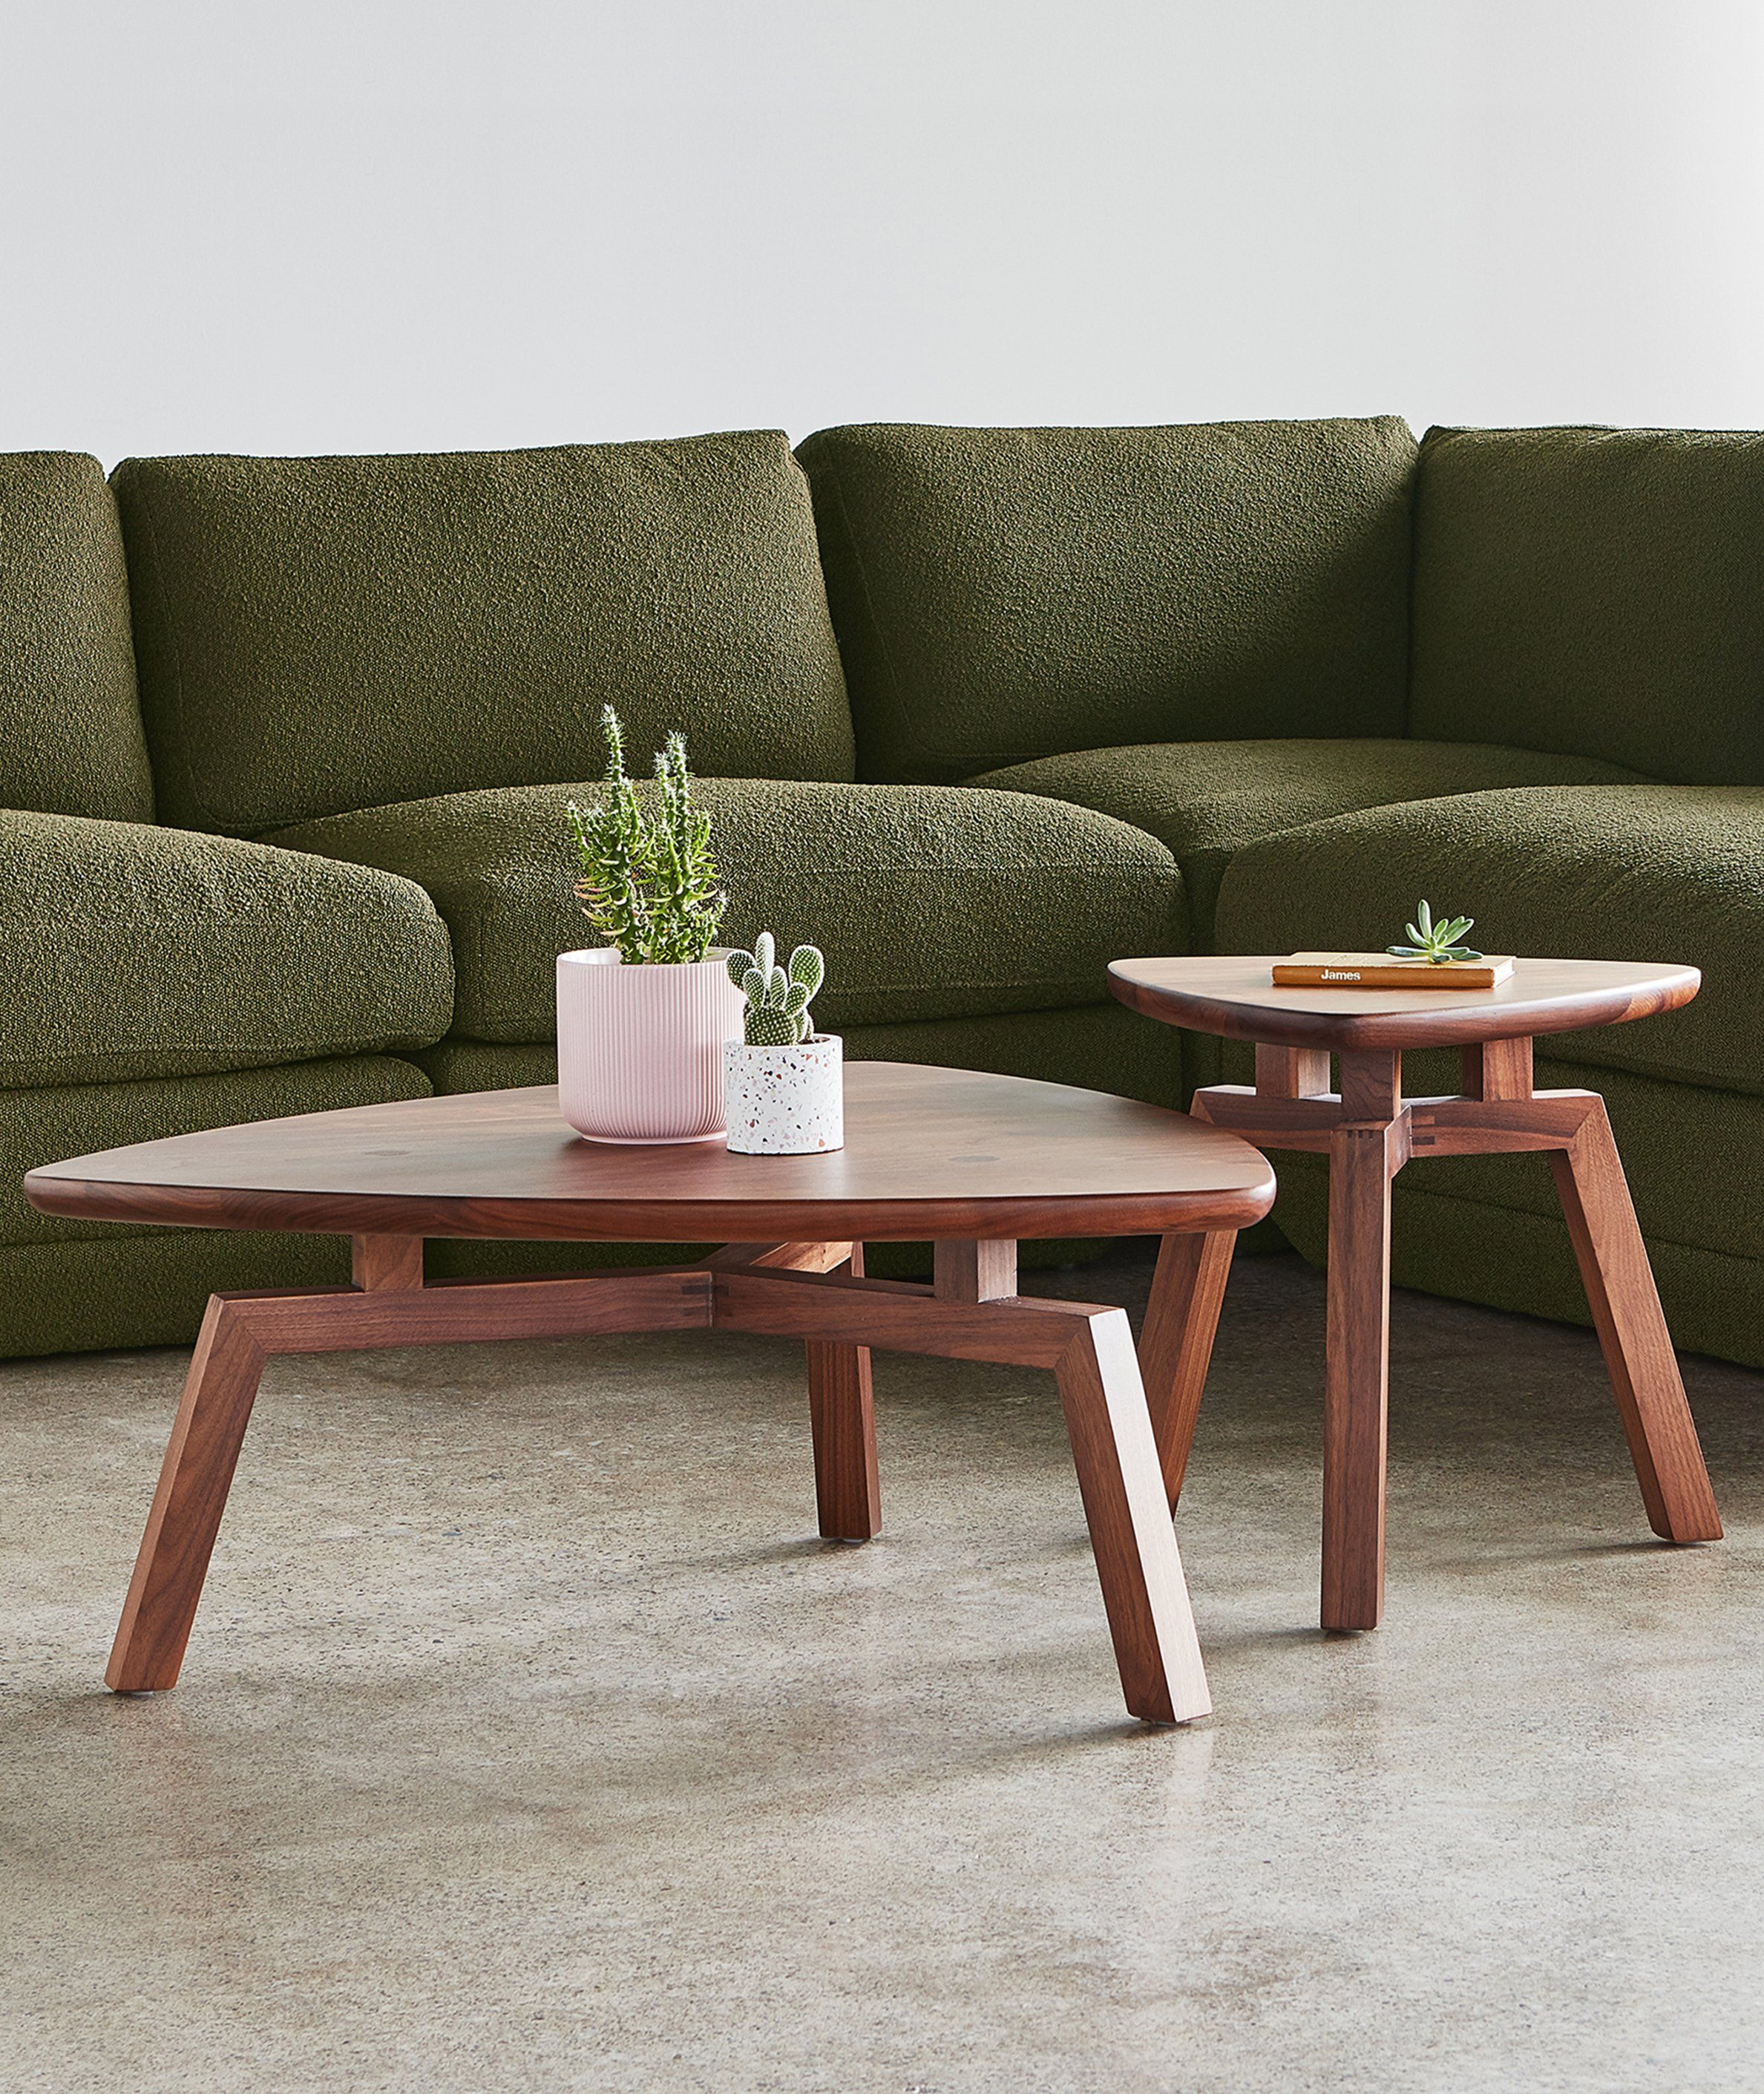 Solana Triangular End Table 2 Colors Coffee Table Contemporary Furnishings Wood Coffe Table [ 2821 x 2377 Pixel ]